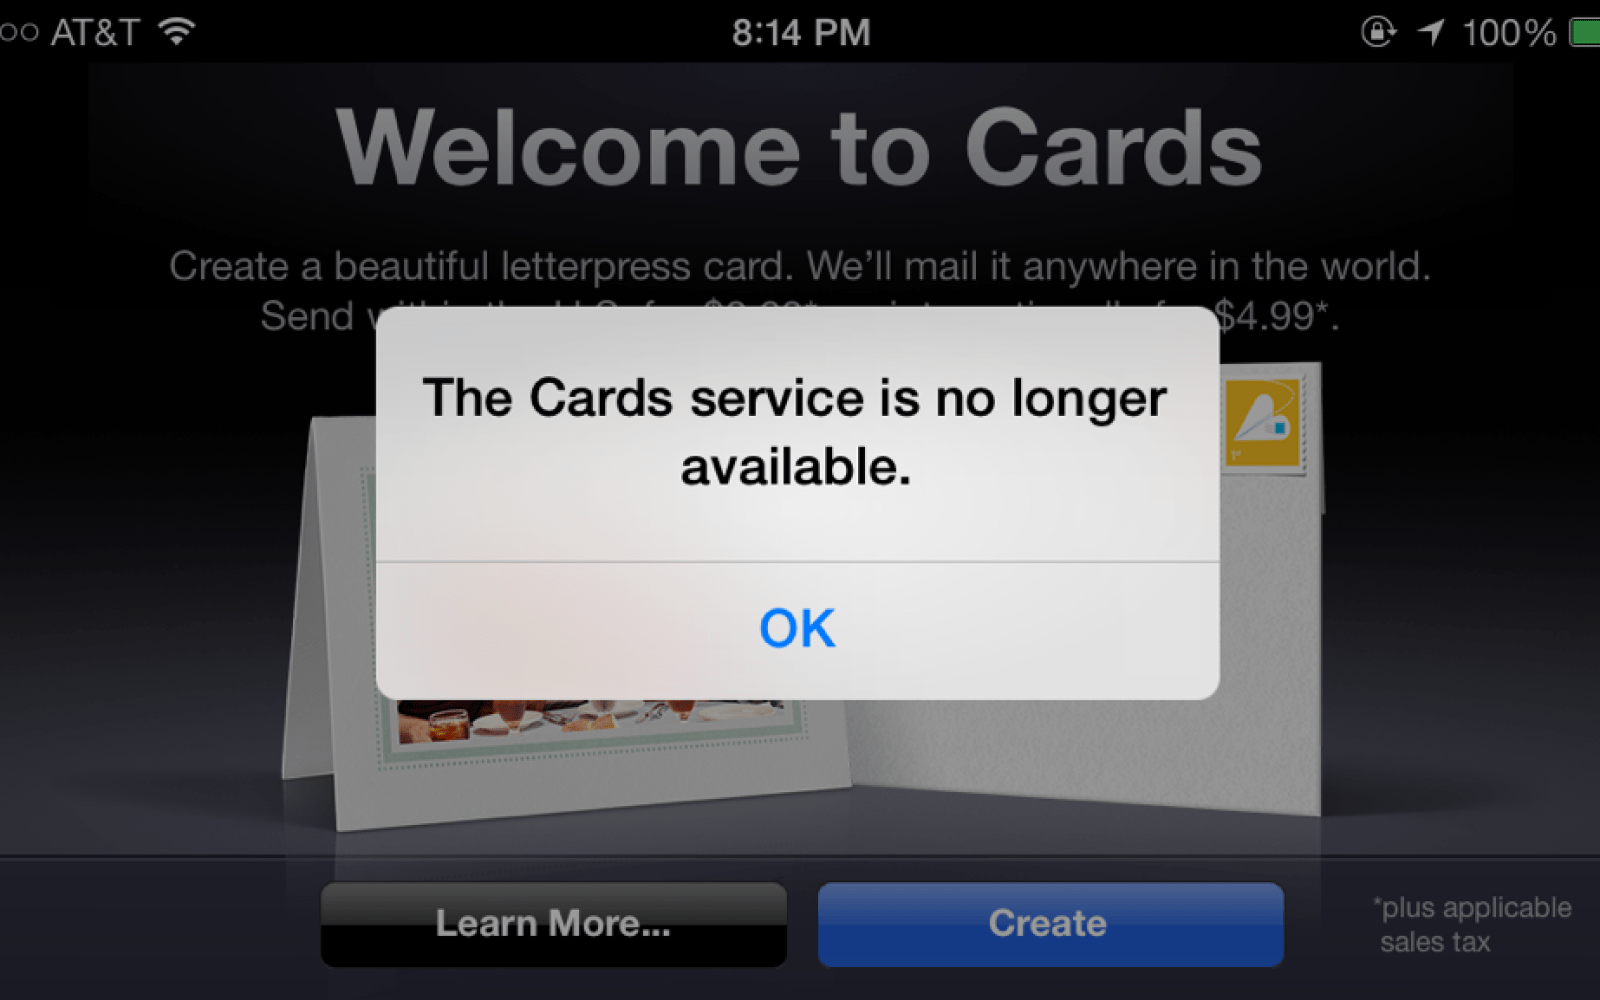 Apple Confirms Cards App For Ios Is Discontinued Recommends Iphoto